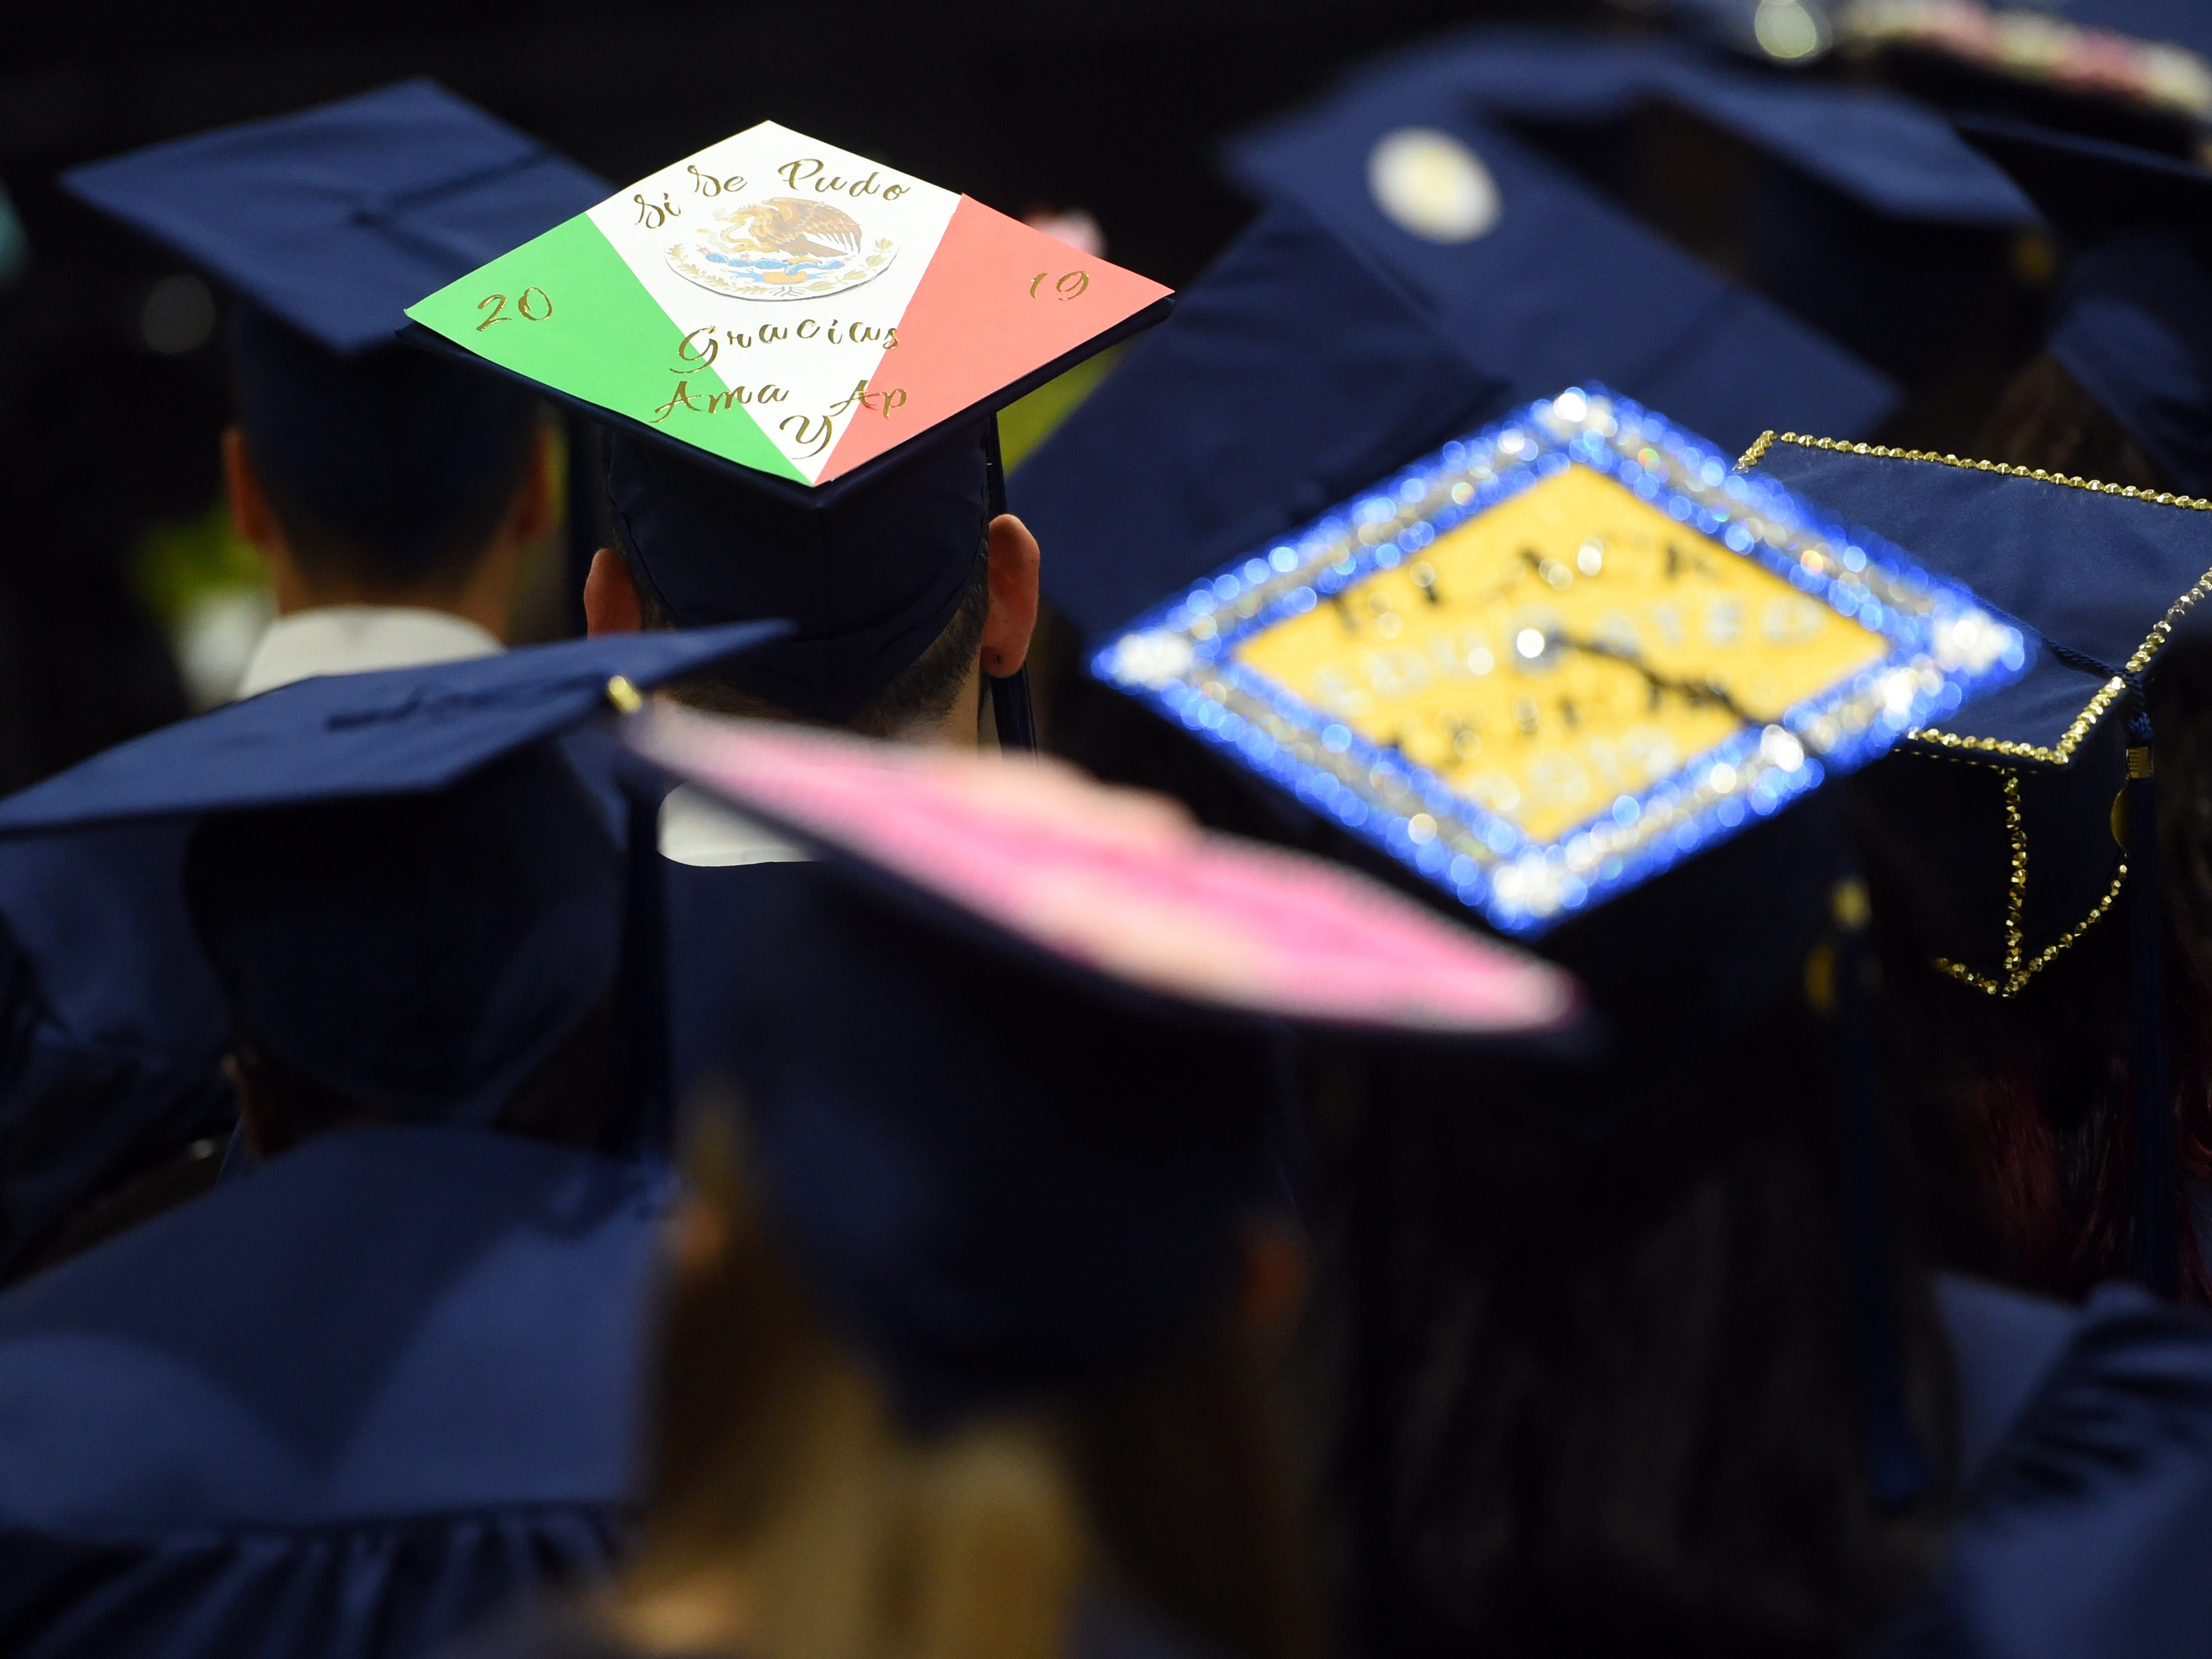 Indian River State College held the first of four spring commencements on Thursday, May 2, 2019, conferring associate of arts degrees. Nearly 3,700 students will graduate from IRSC this spring, making this the seventh consecutive year that the graduating class has exceeded 3,000.